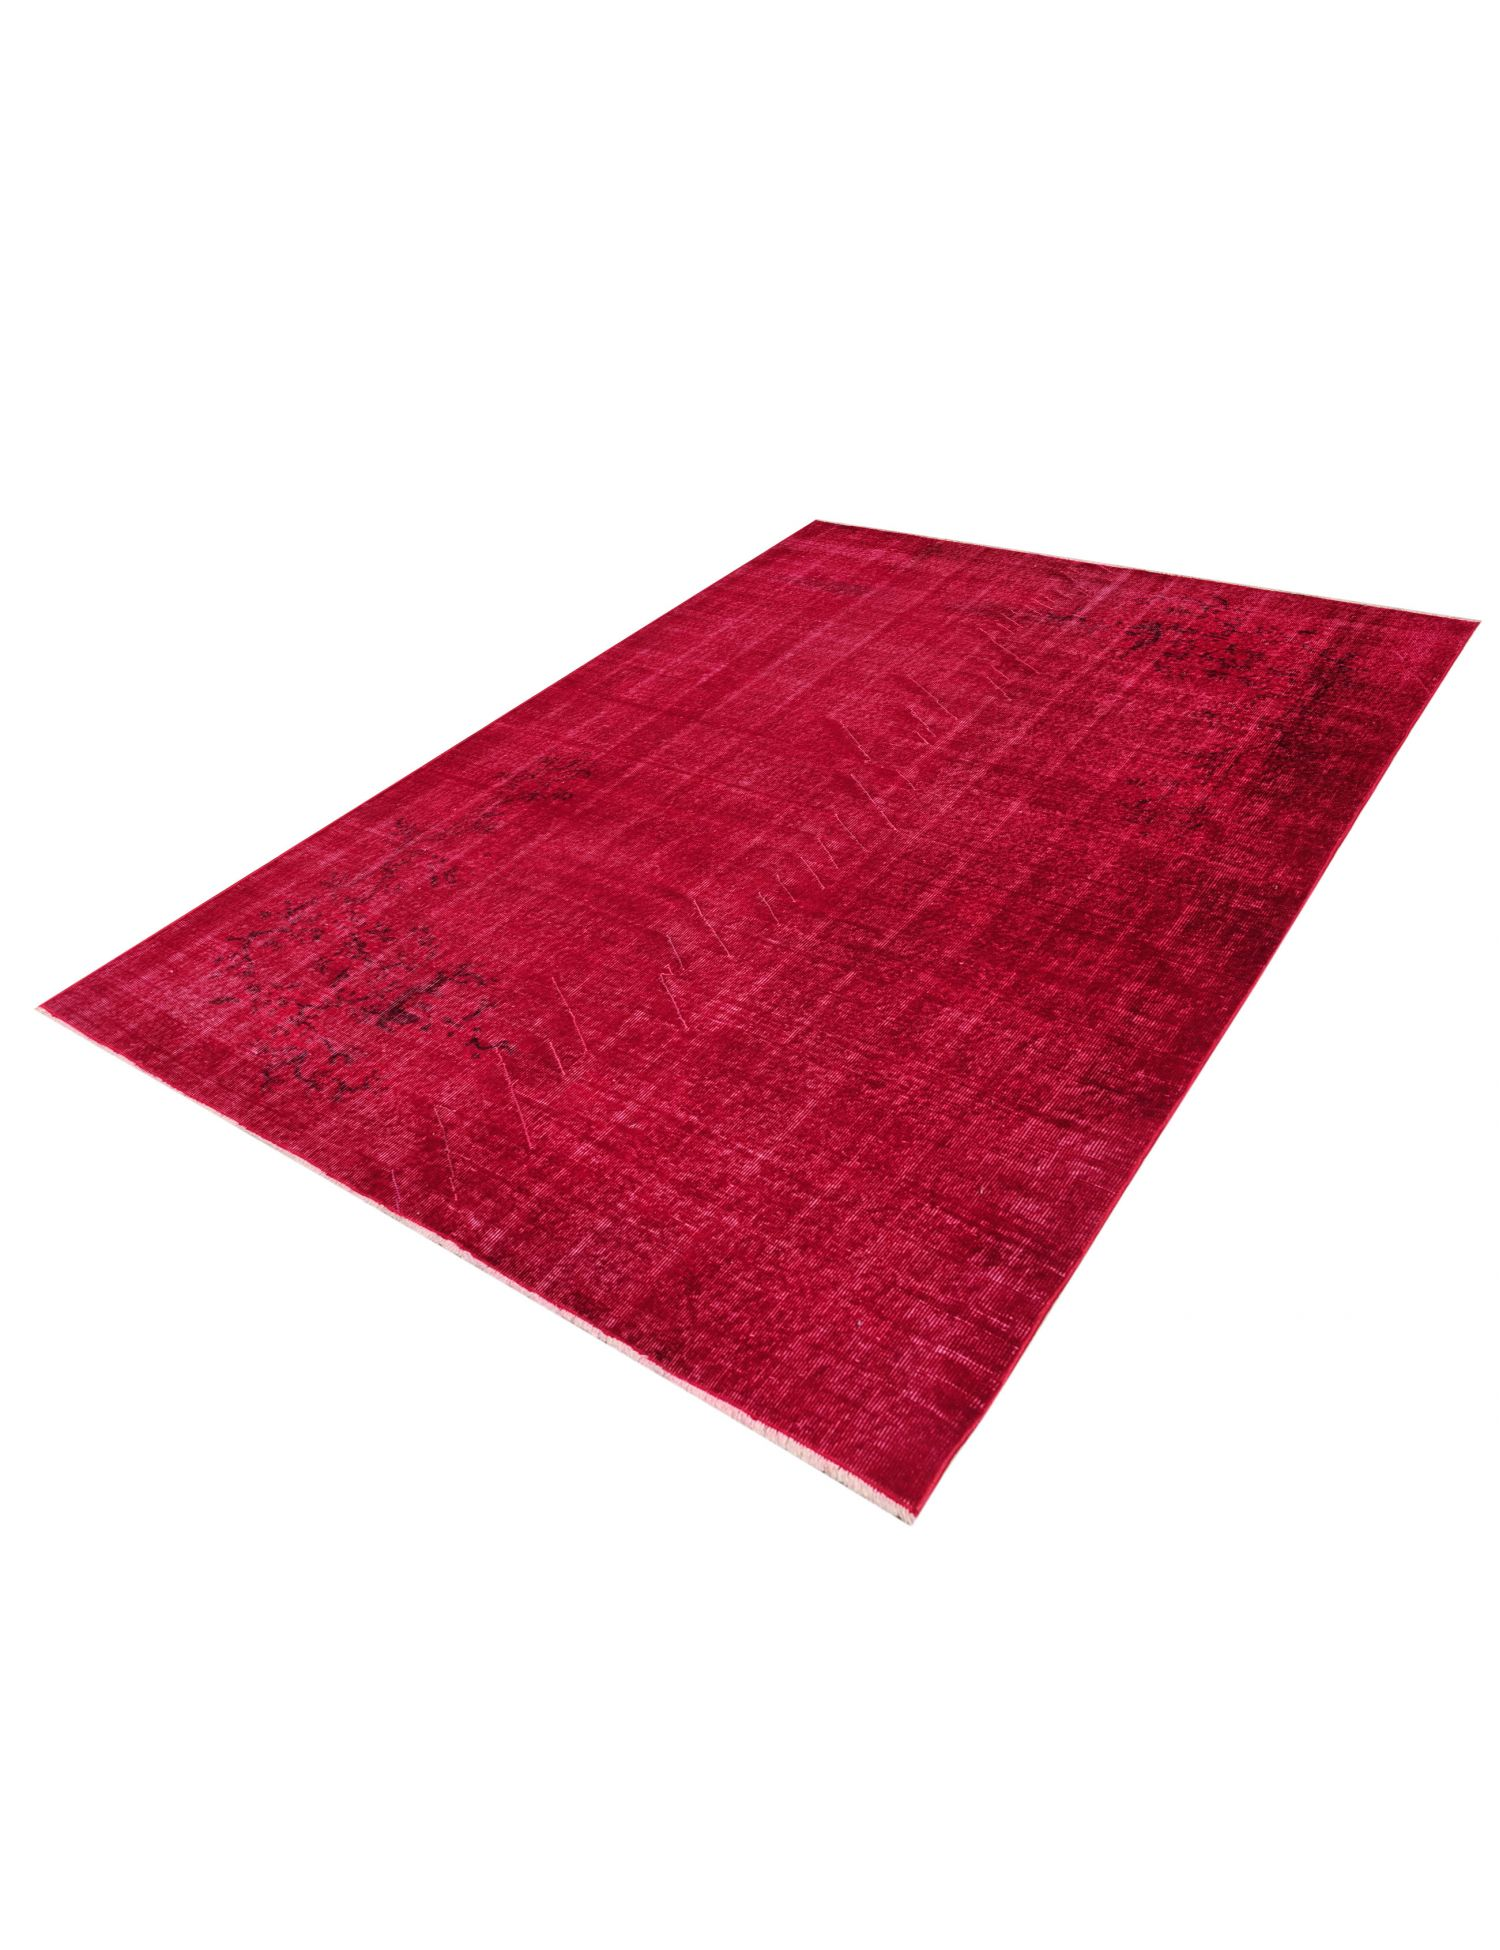 Vintage Carpet  red <br/>275 x 185 cm